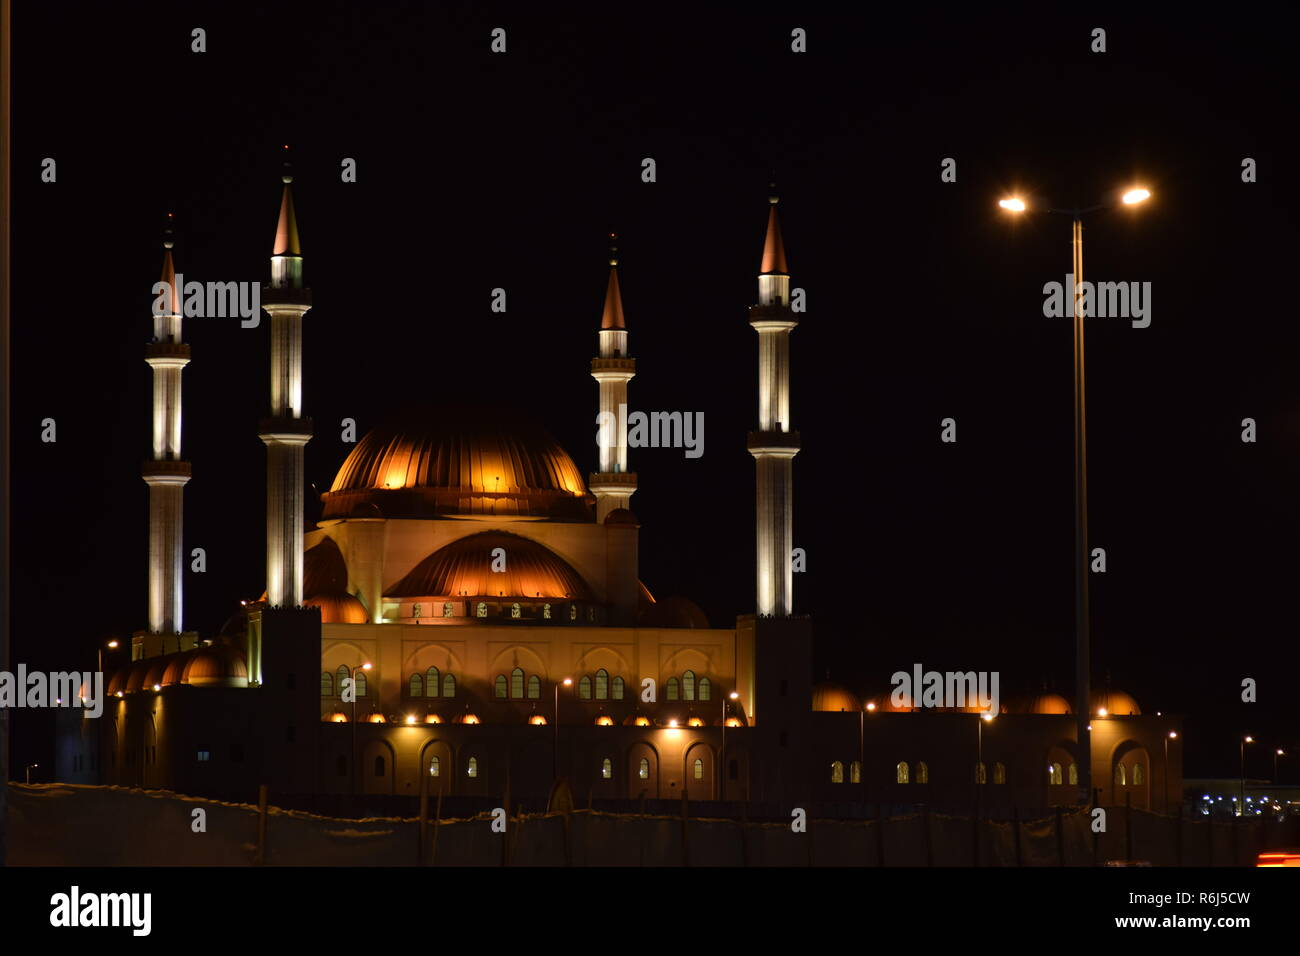 Al-Rajhi Mosque - Stock Image